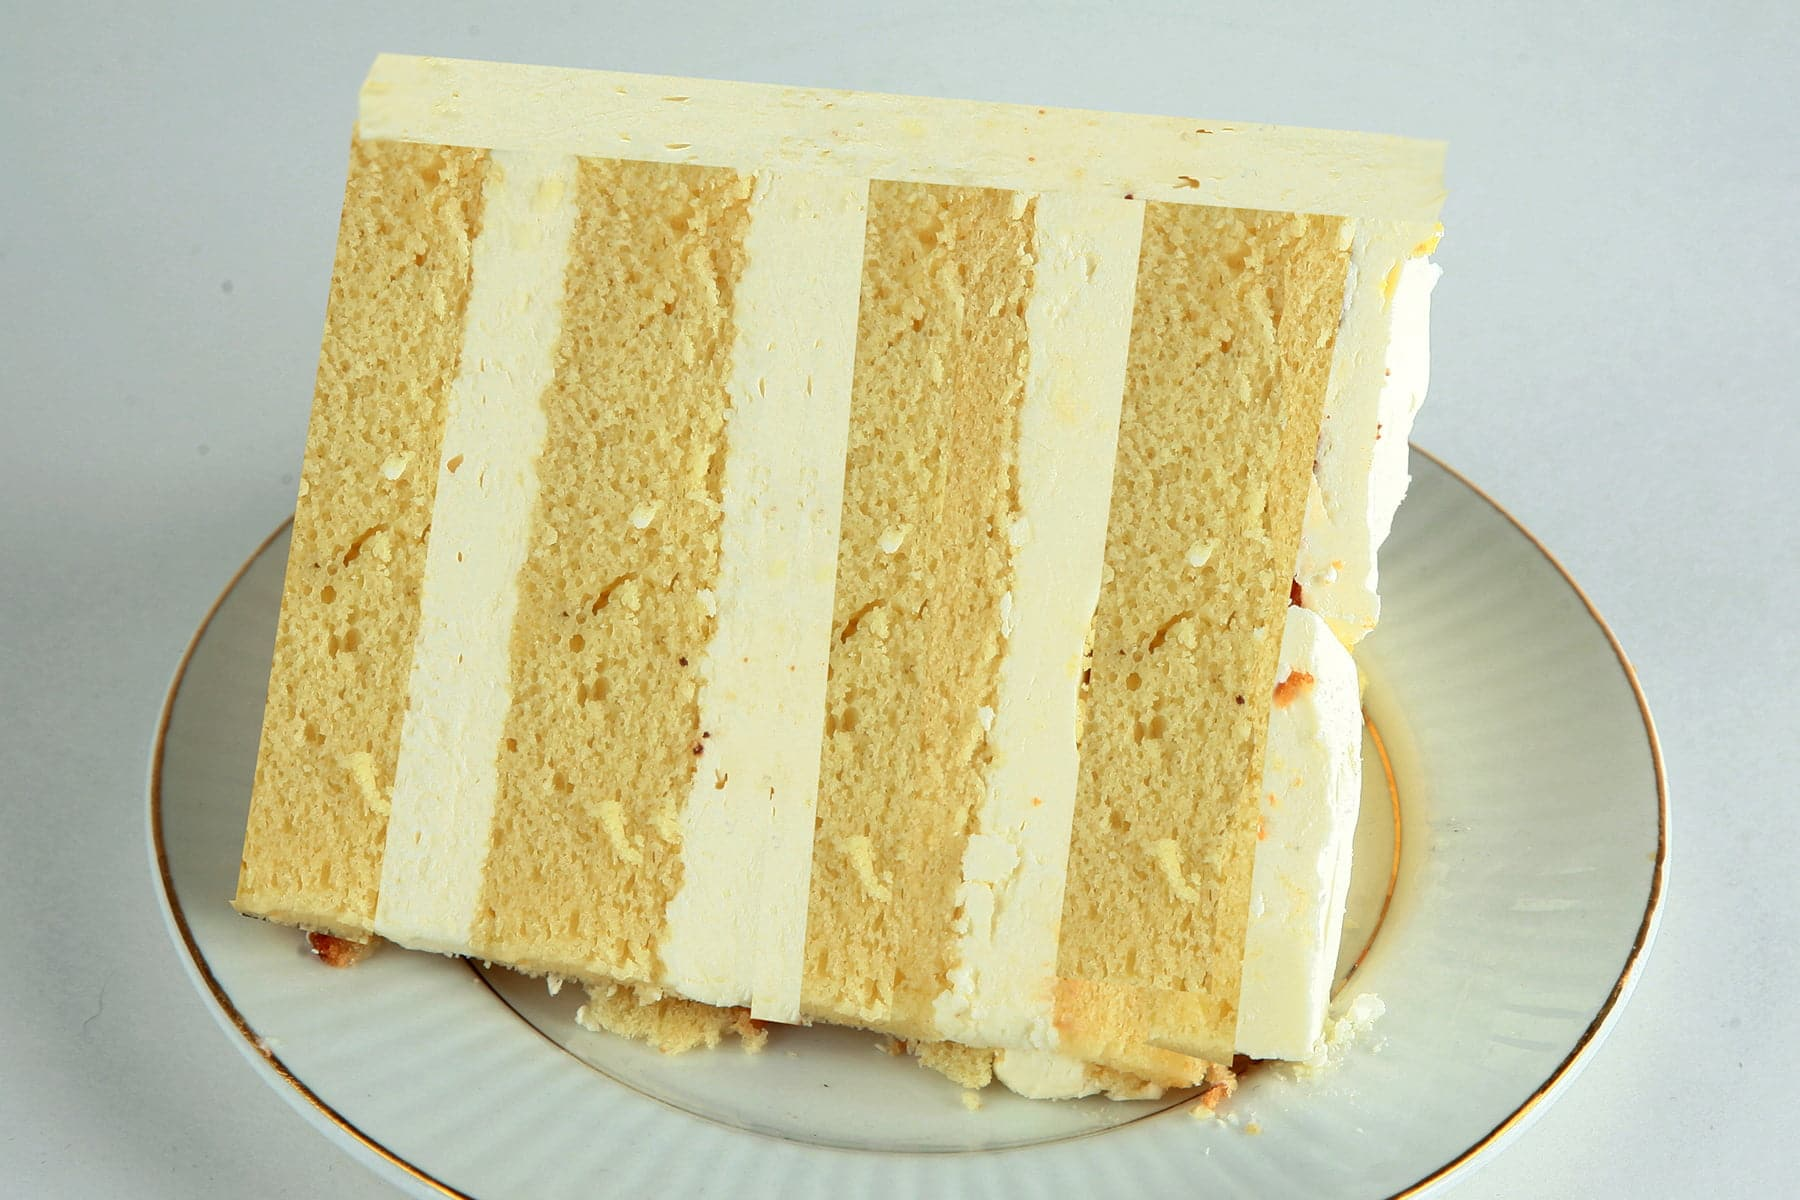 A slice of white chocolate amaretto cake.  4 layers of a yellowish cake, separated by layers of white chocolate buttercream.